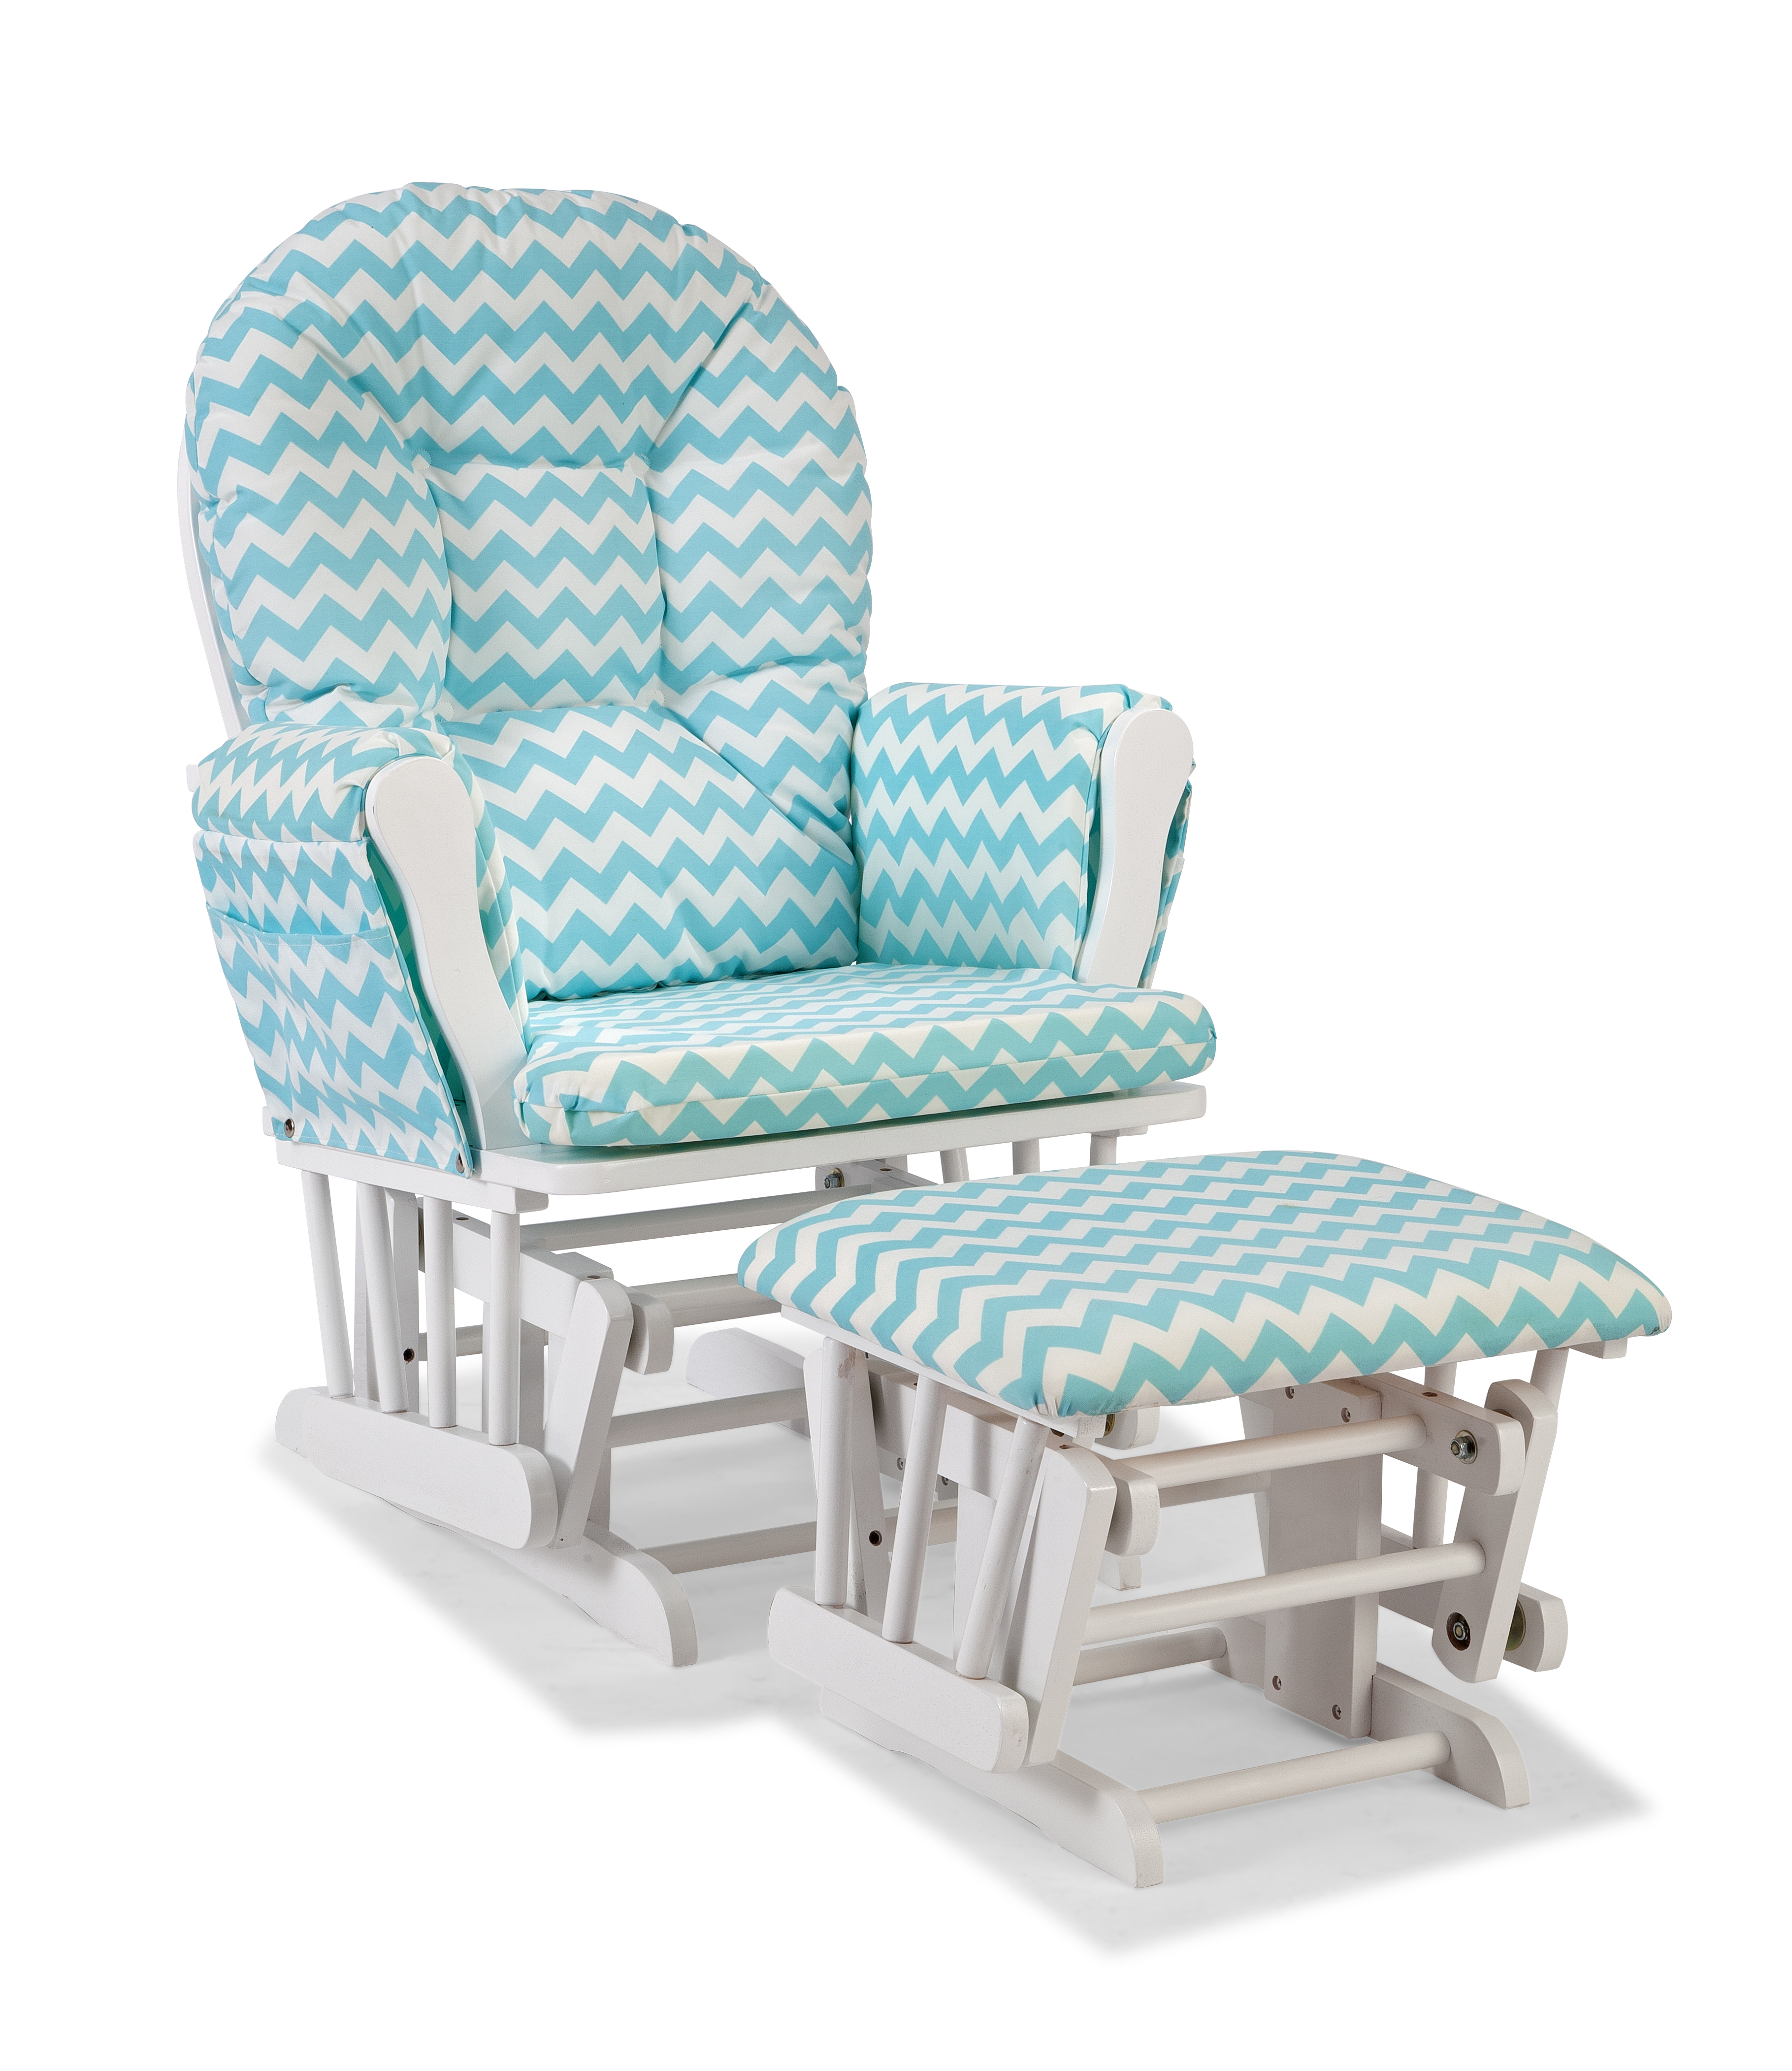 bedroom glider chair wheelchair stand for car storkcraft custom hoop and ottoman white turquoise